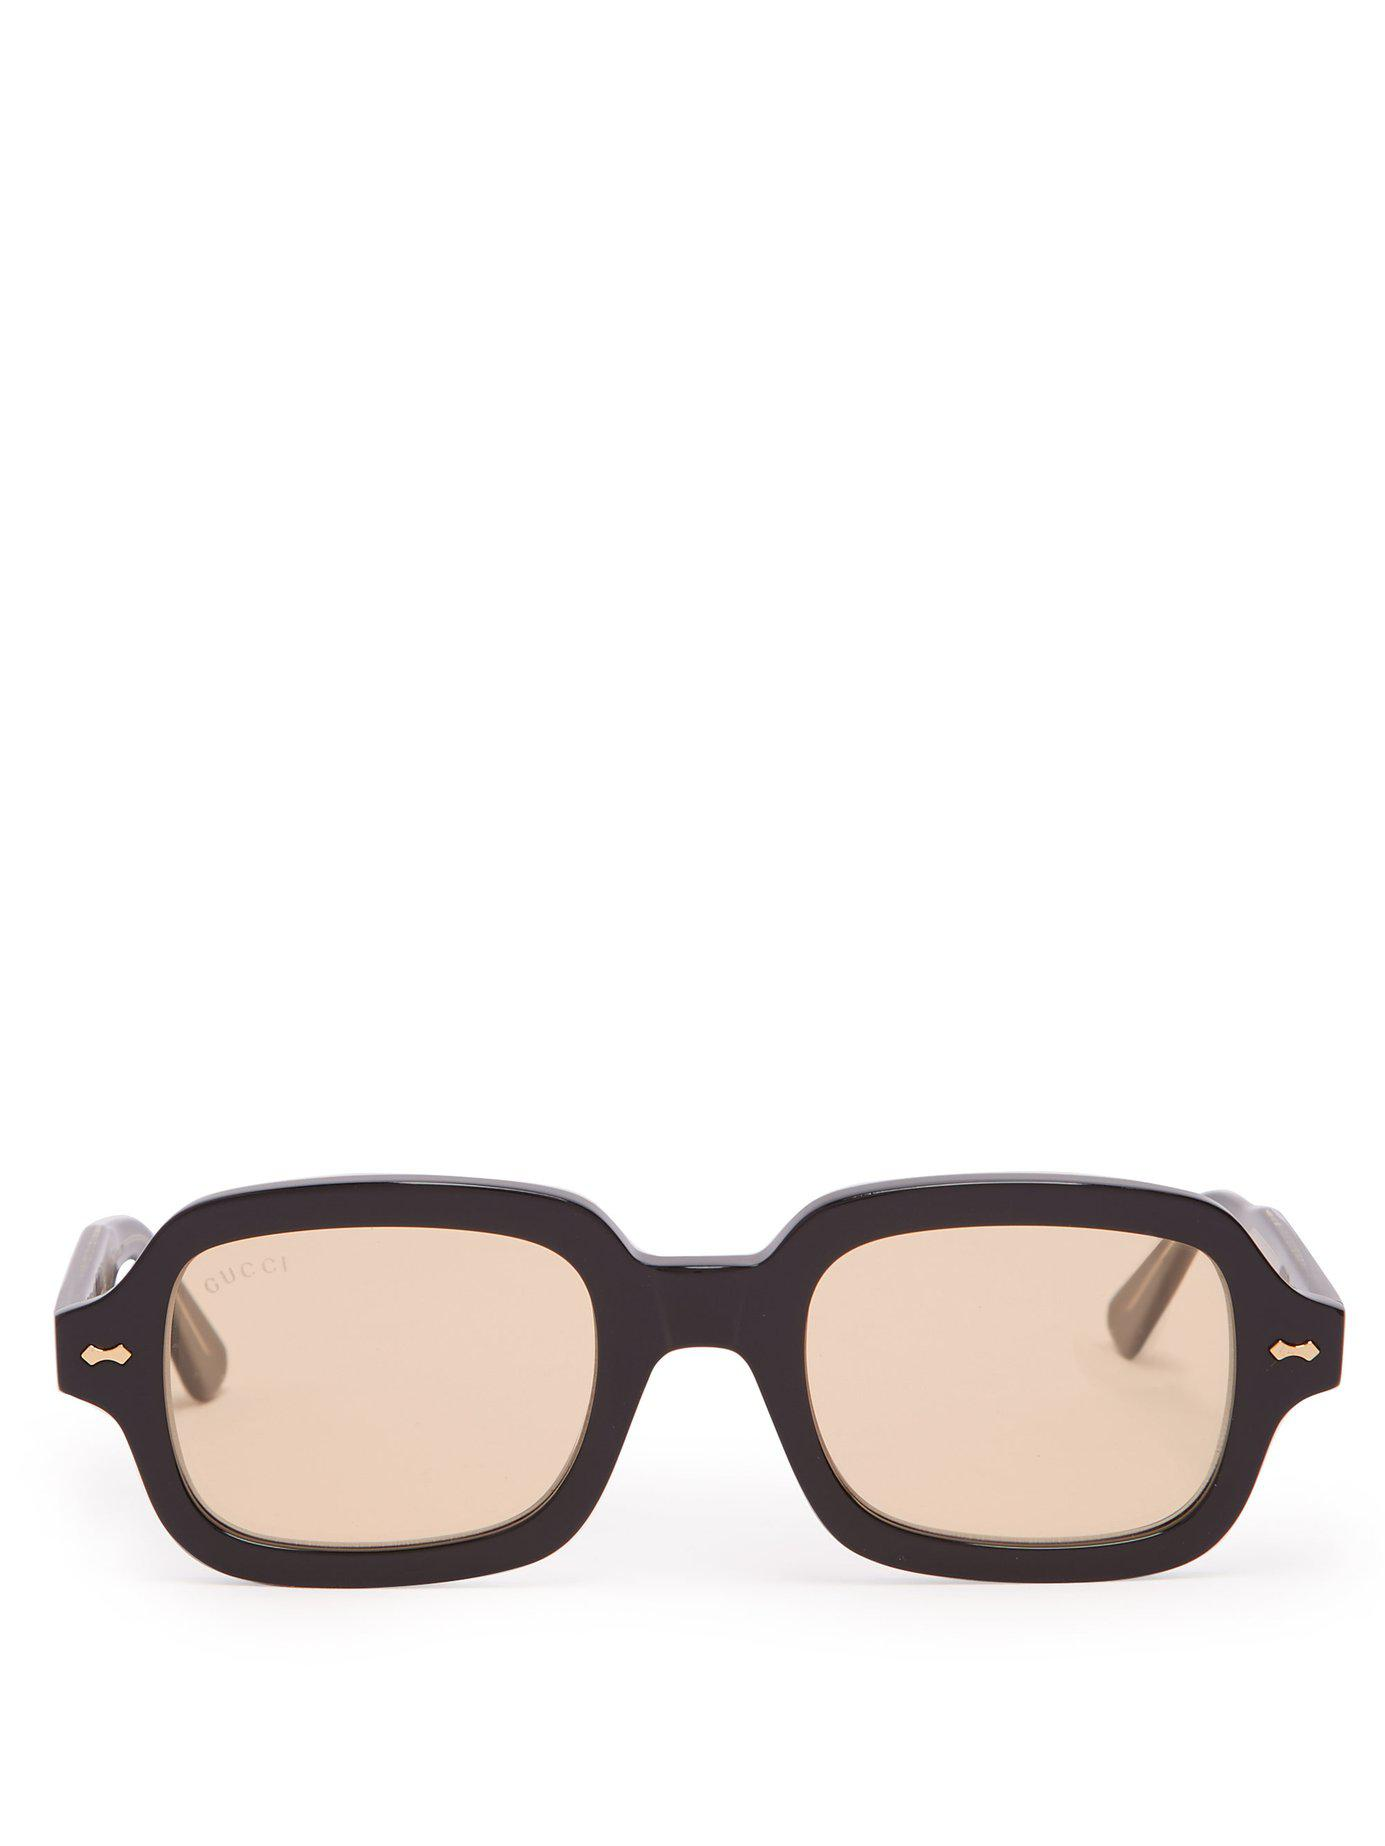 632c920e53a Gucci - Black Round Square Frame Acetate Sunglasses for Men - Lyst. View  fullscreen